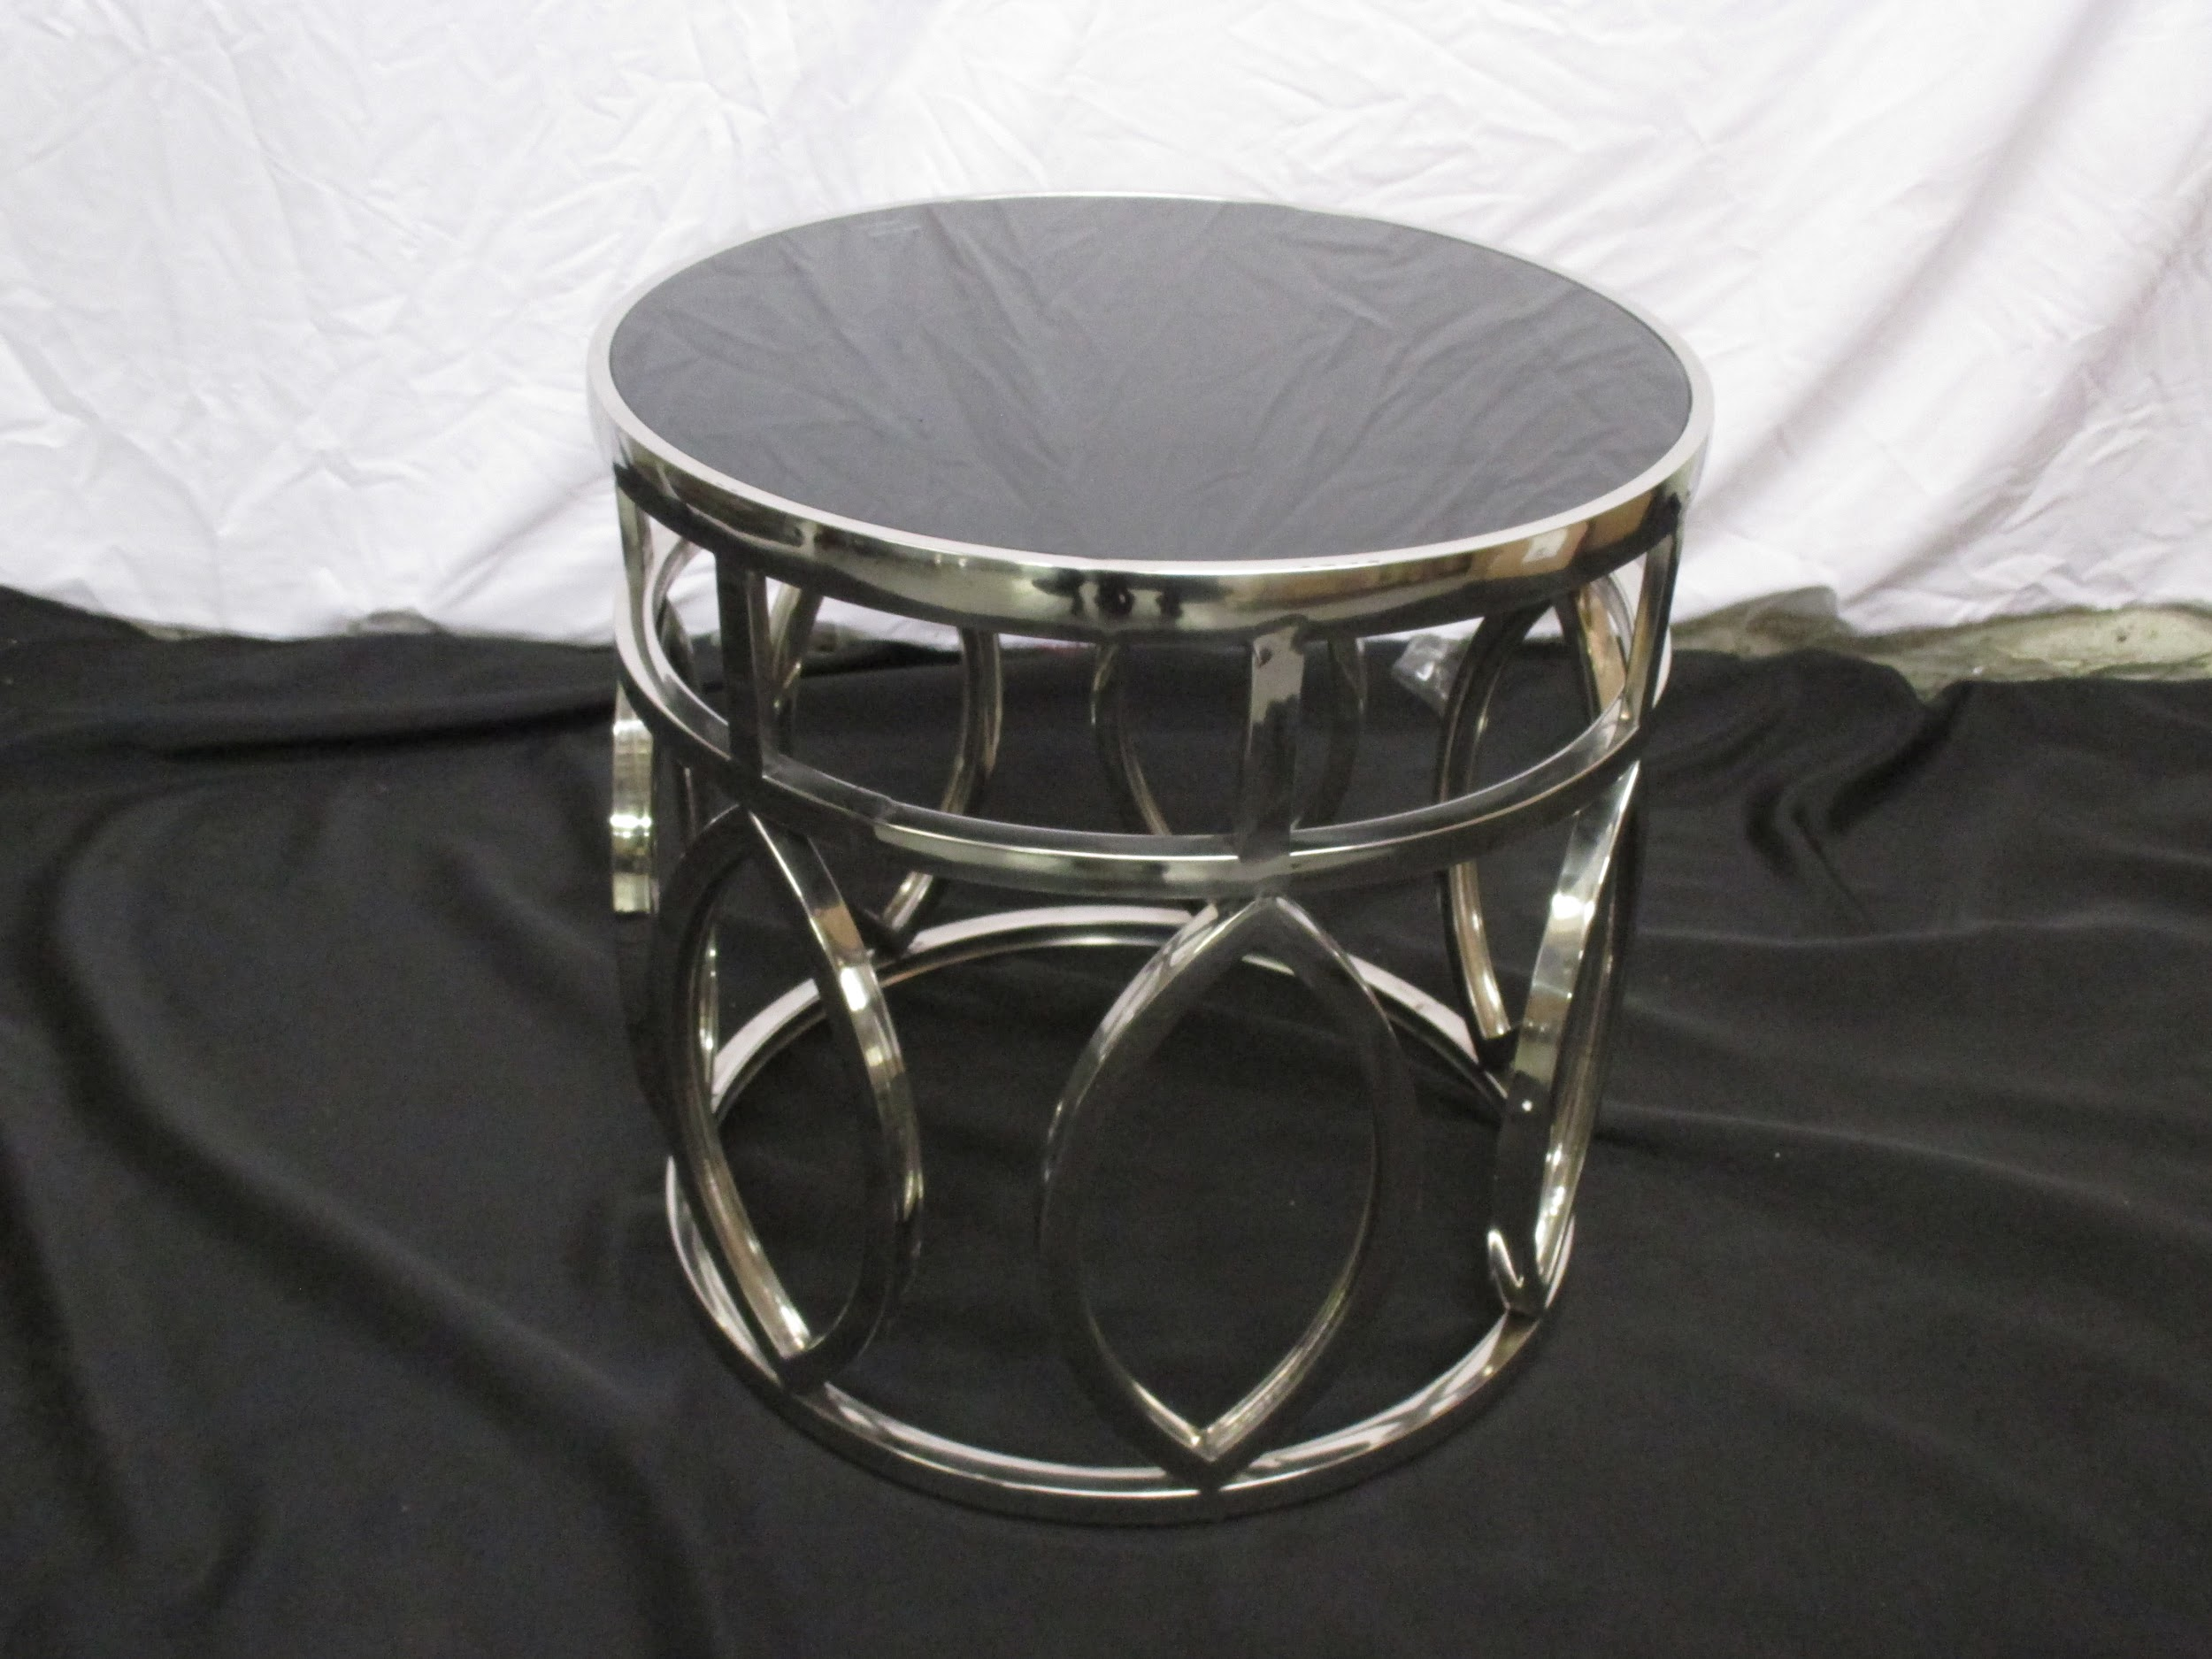 Nice STAINLESS STEEL ROUND TABLE E707 S